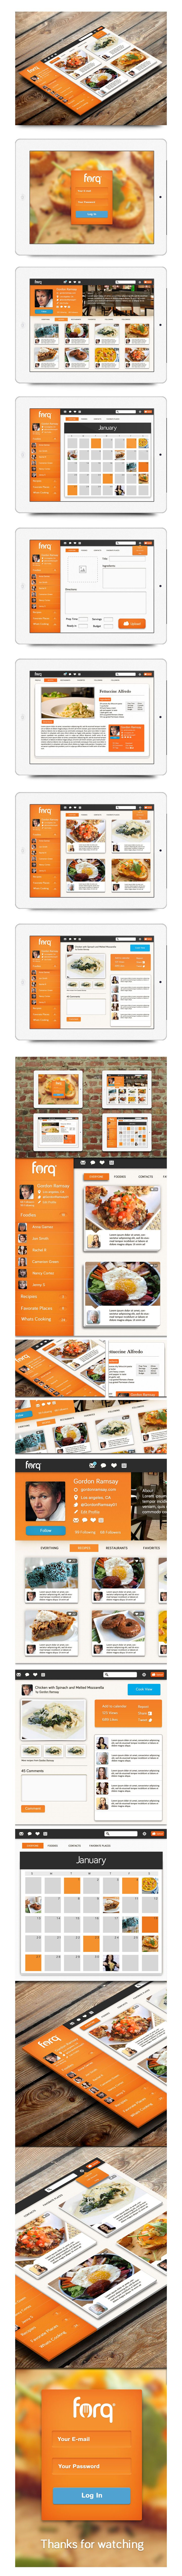 FORQ - Food Network social network app for foodies | Designer: Isaac Sanchez